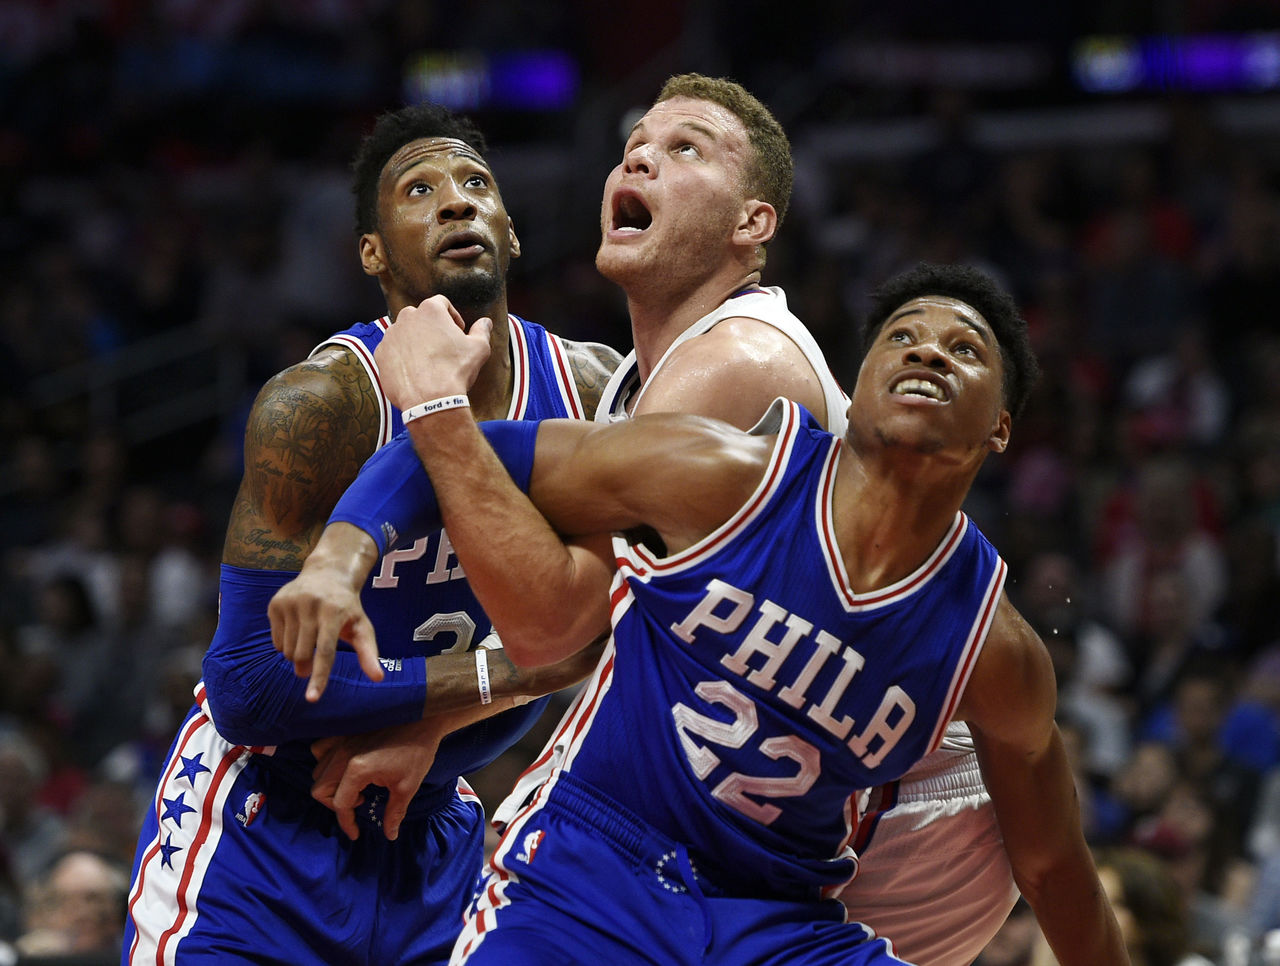 Cropped_2017-03-11t231732z_2010939674_nocid_rtrmadp_3_nba-philadelphia-76ers-at-los-angeles-clippers